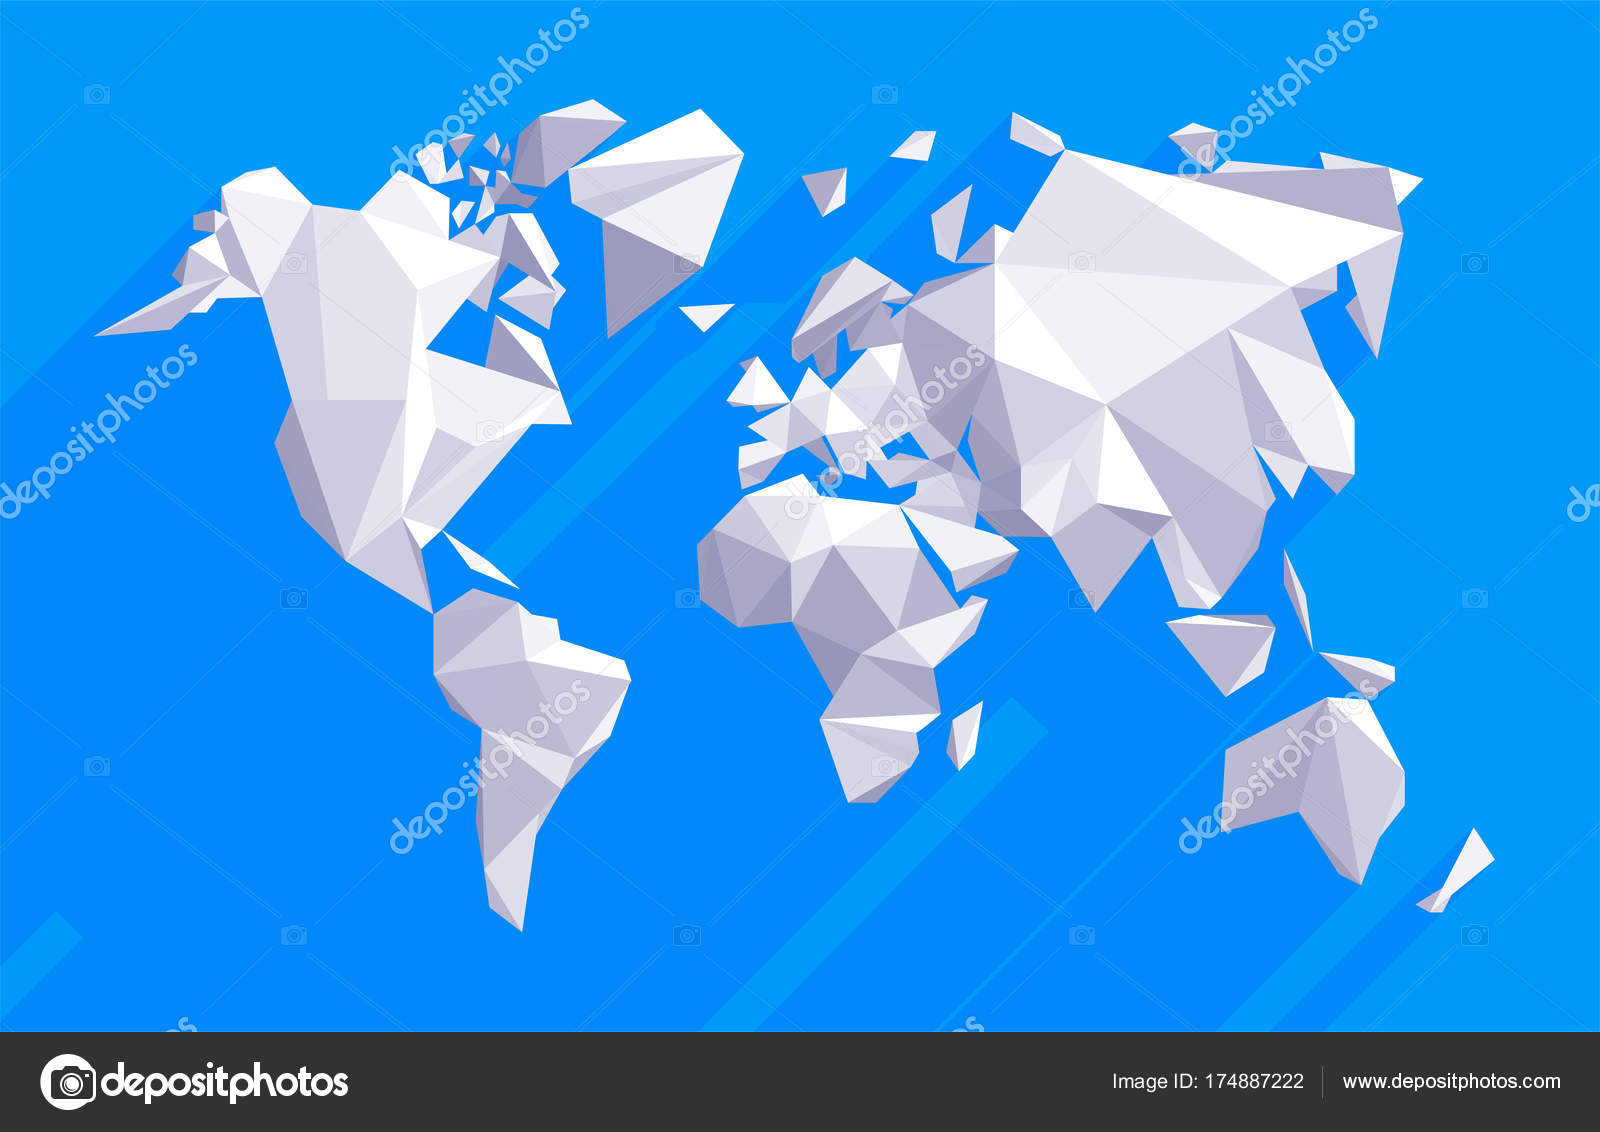 Origami world map stock vector kundra 174887222 vector origami world with flat shadows triangle world map illustration low poly design vector by kundra gumiabroncs Gallery